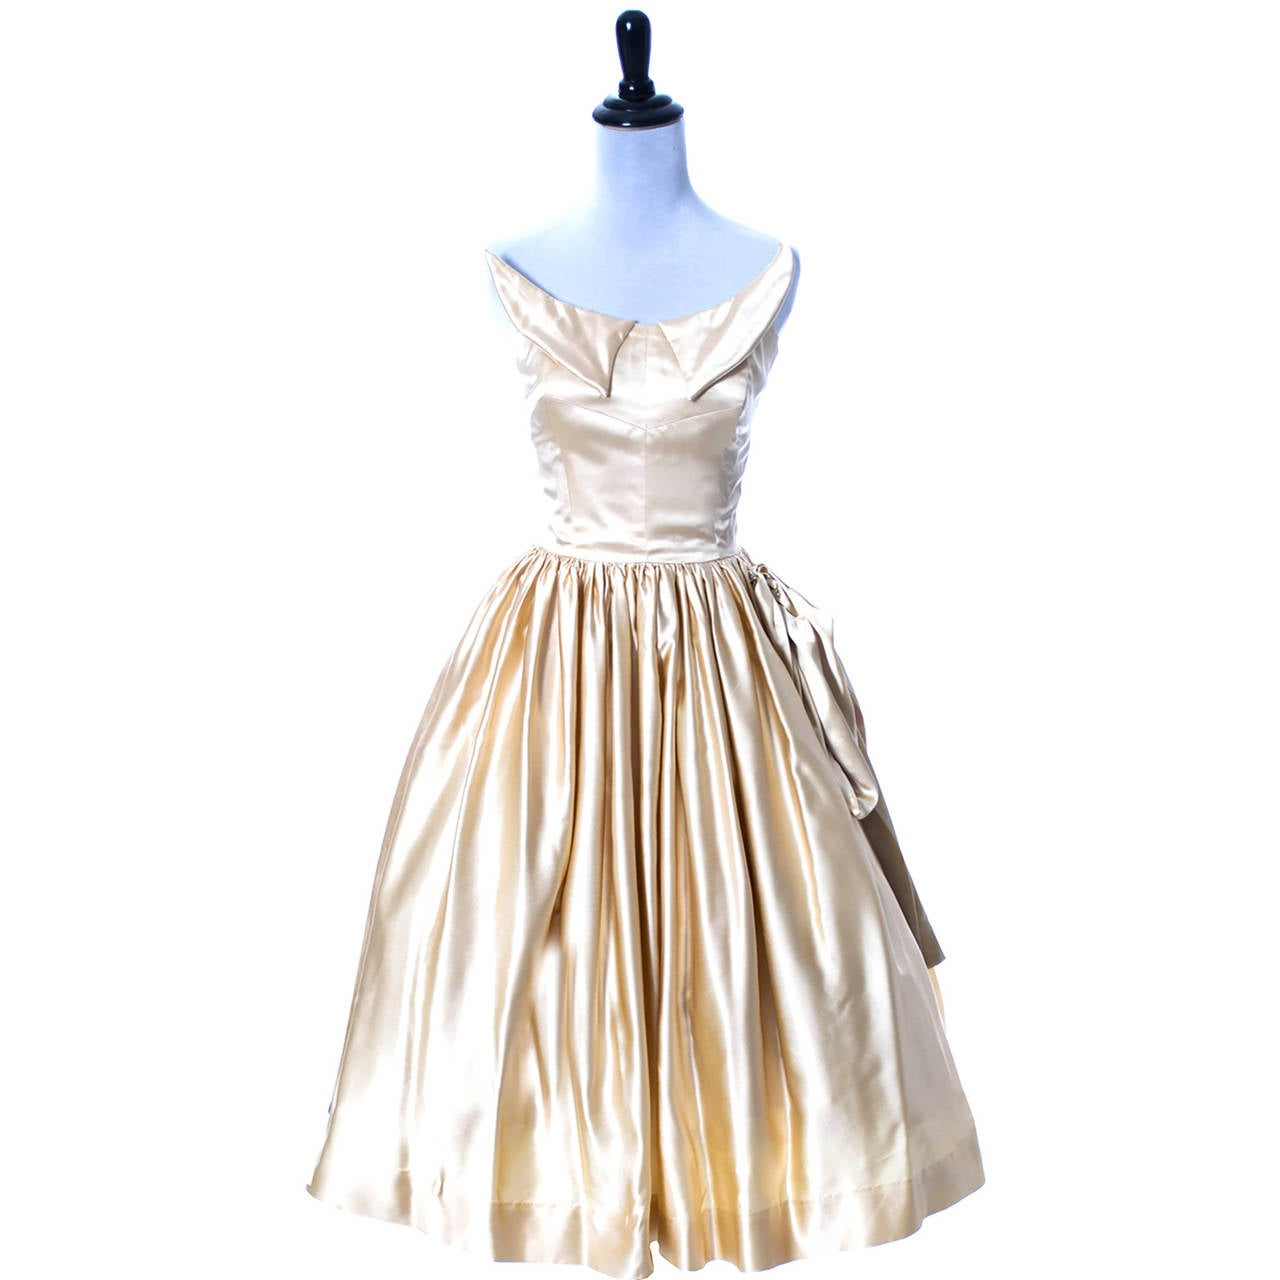 1950s Vintage Dress Champagne Satin Winged Bust Wedding Peg Powers Original 7